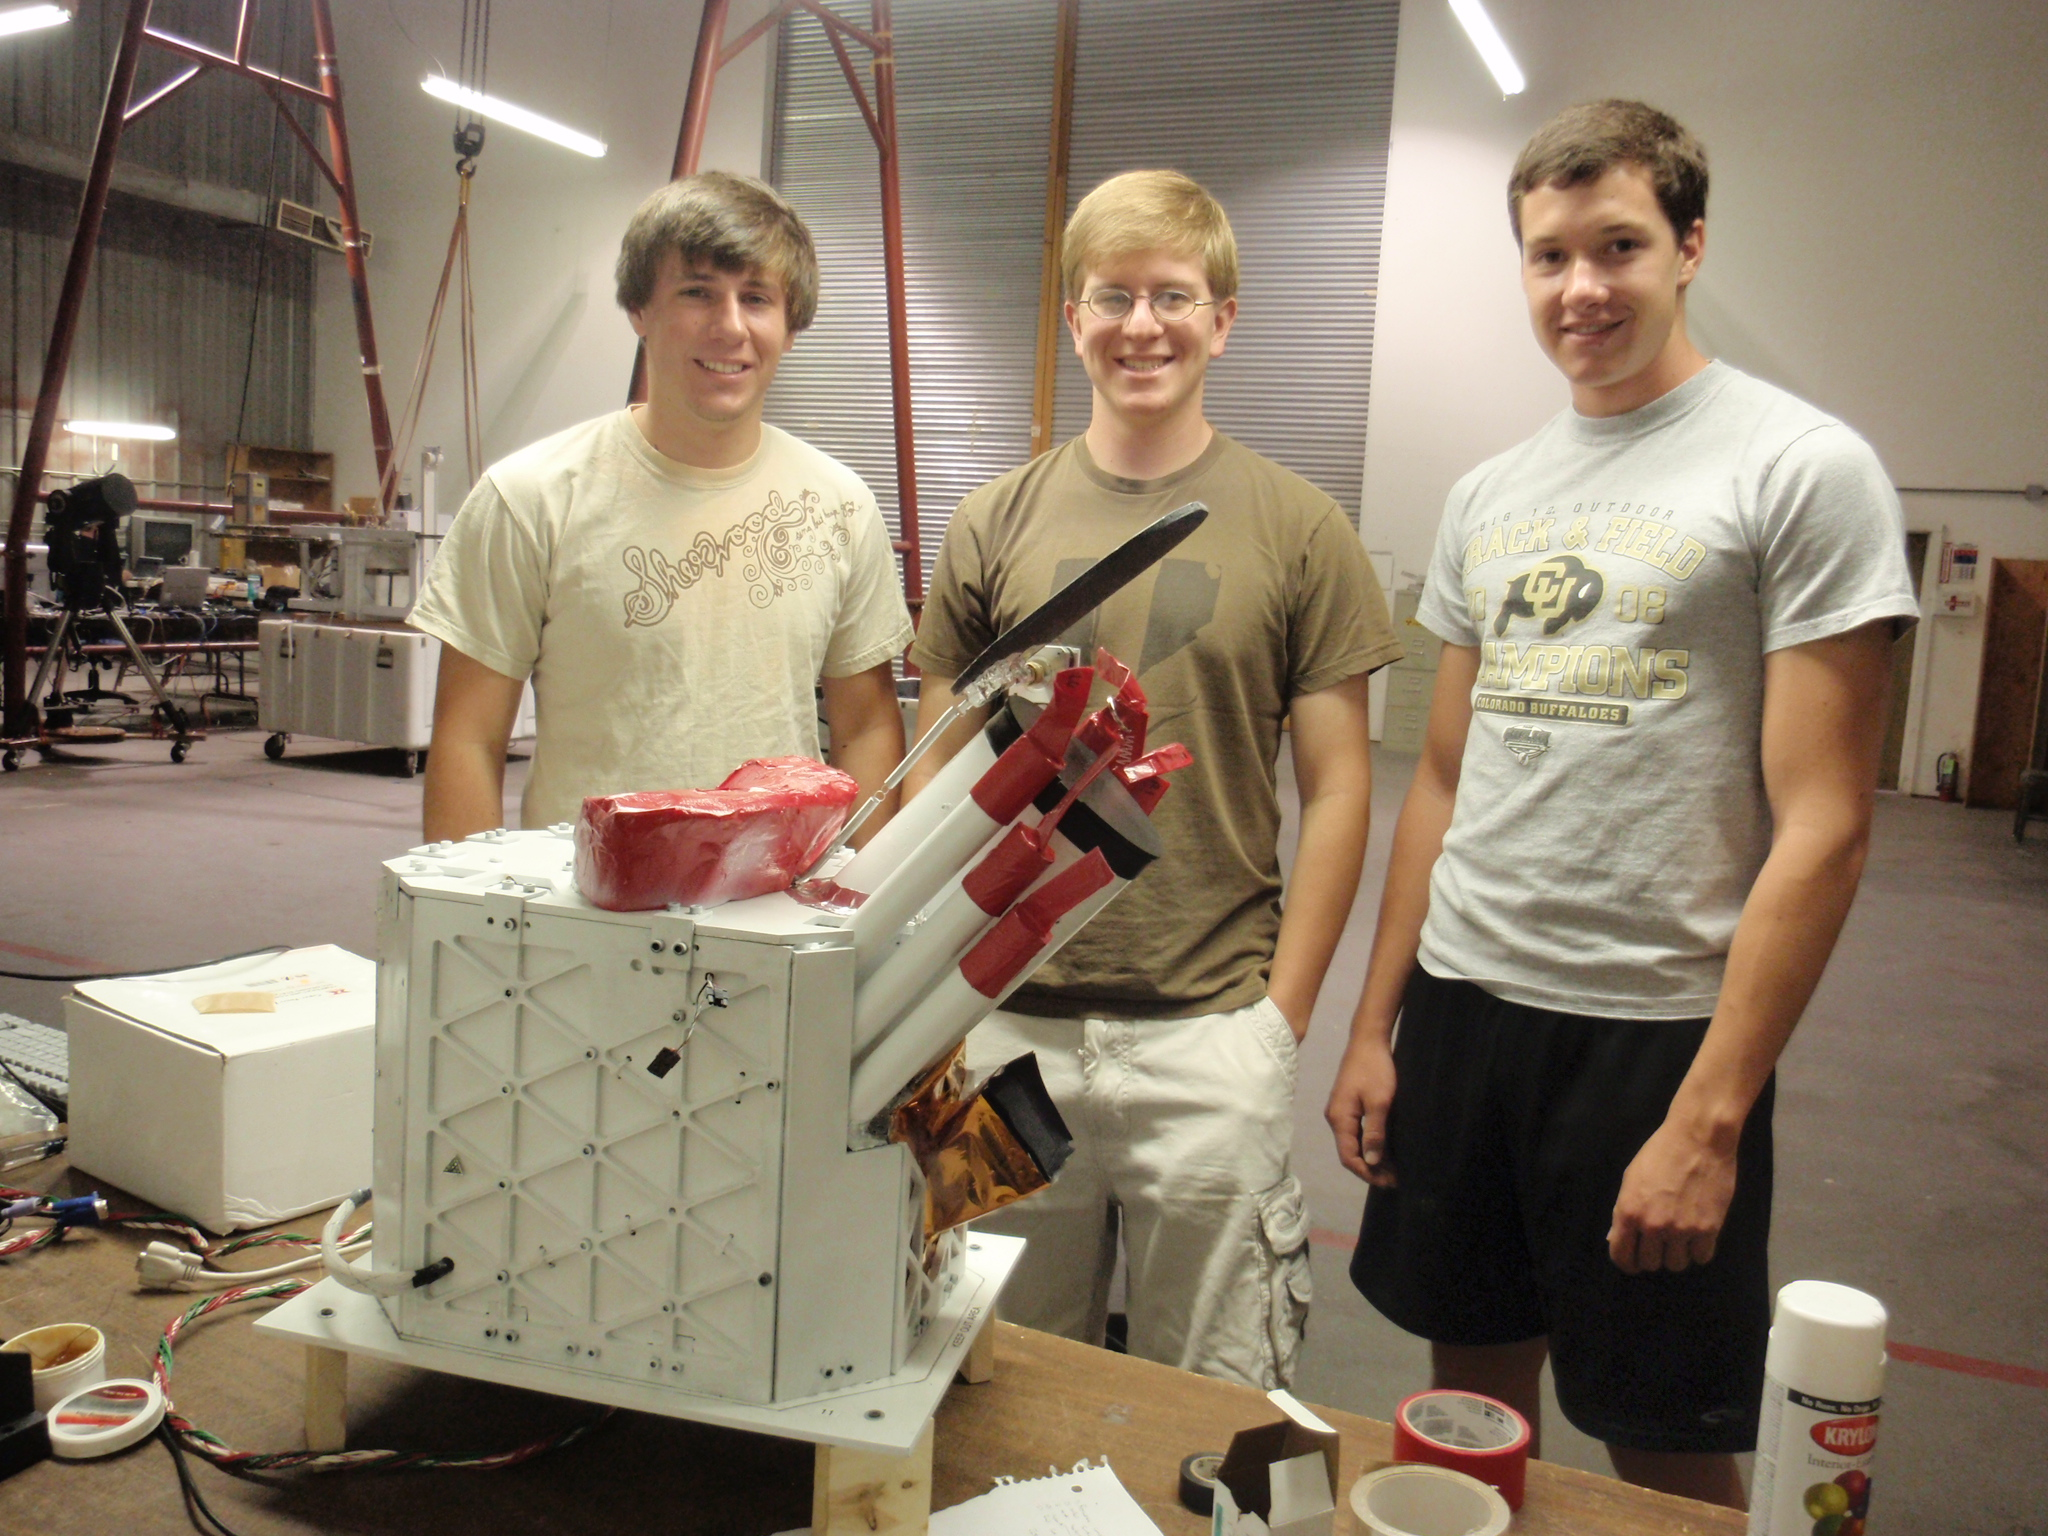 HASP Team Members Kevin, Nick, and Andrew with a finished payload